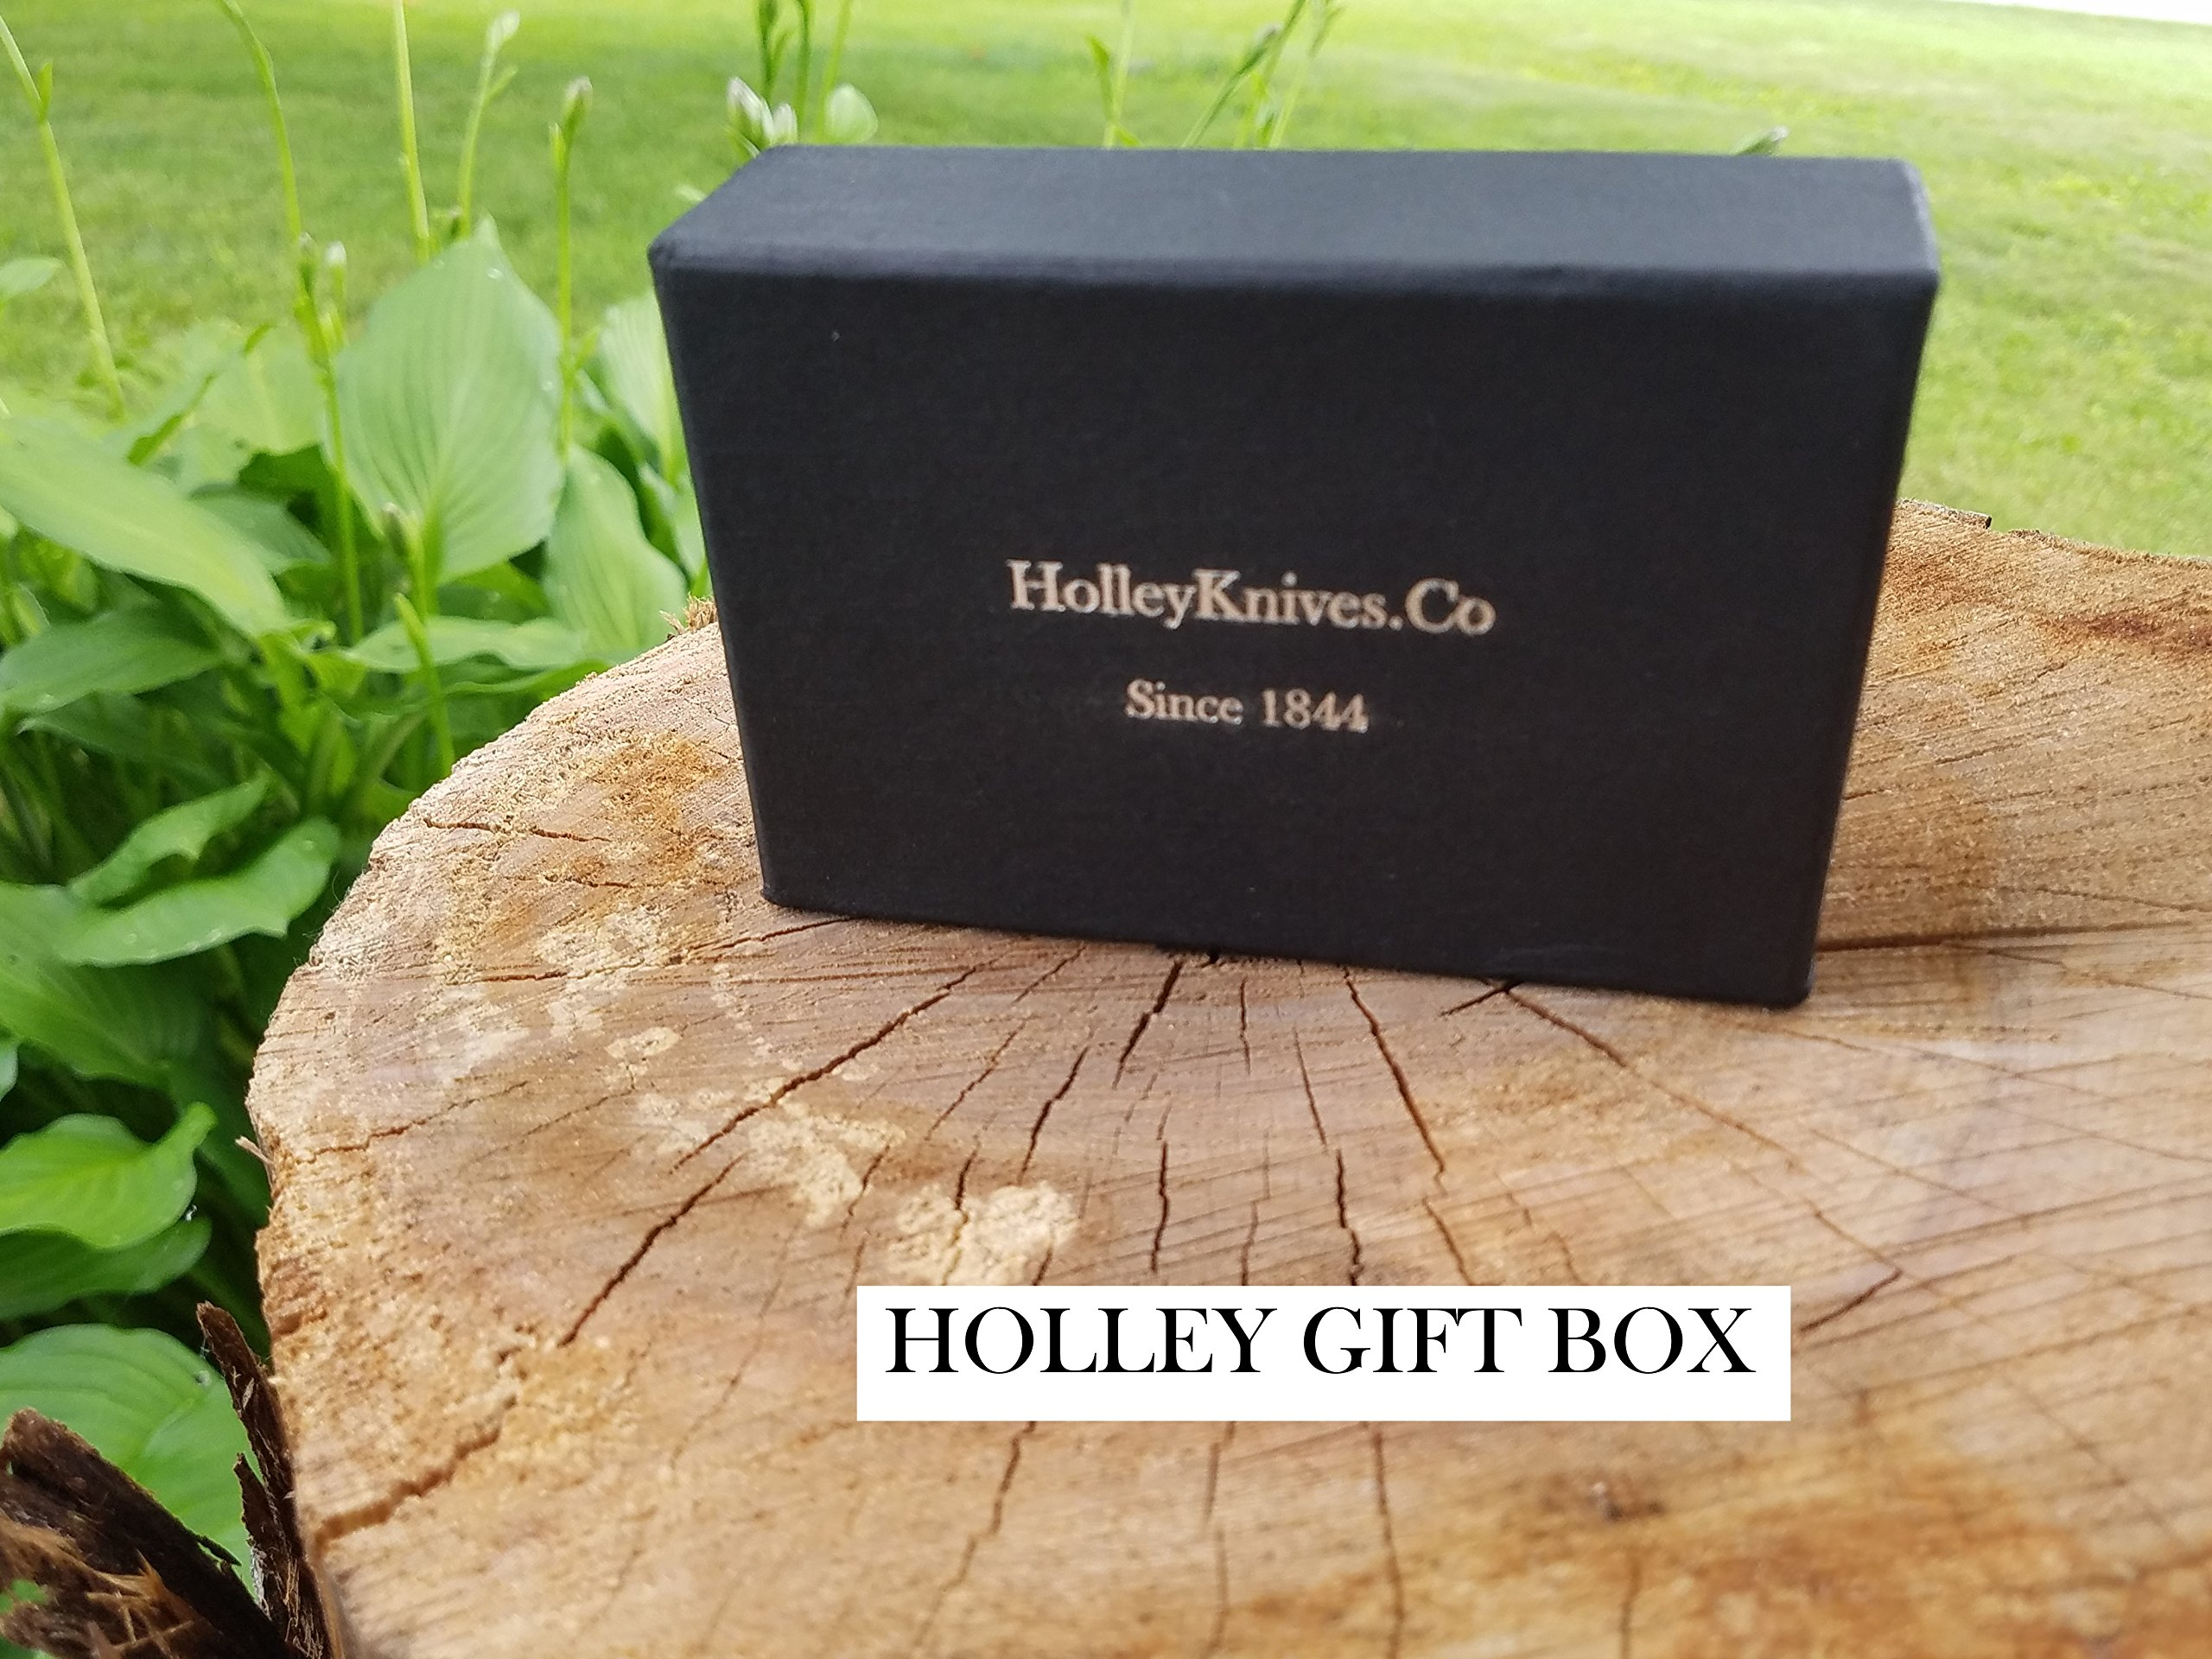 HOLLEY Pocket Knife Multi-tool MOD13A with Your Choice 4x Premium Wood Scales (Quarter Sawn Black Walnut in Picture) by Holley Knives (Image #4)